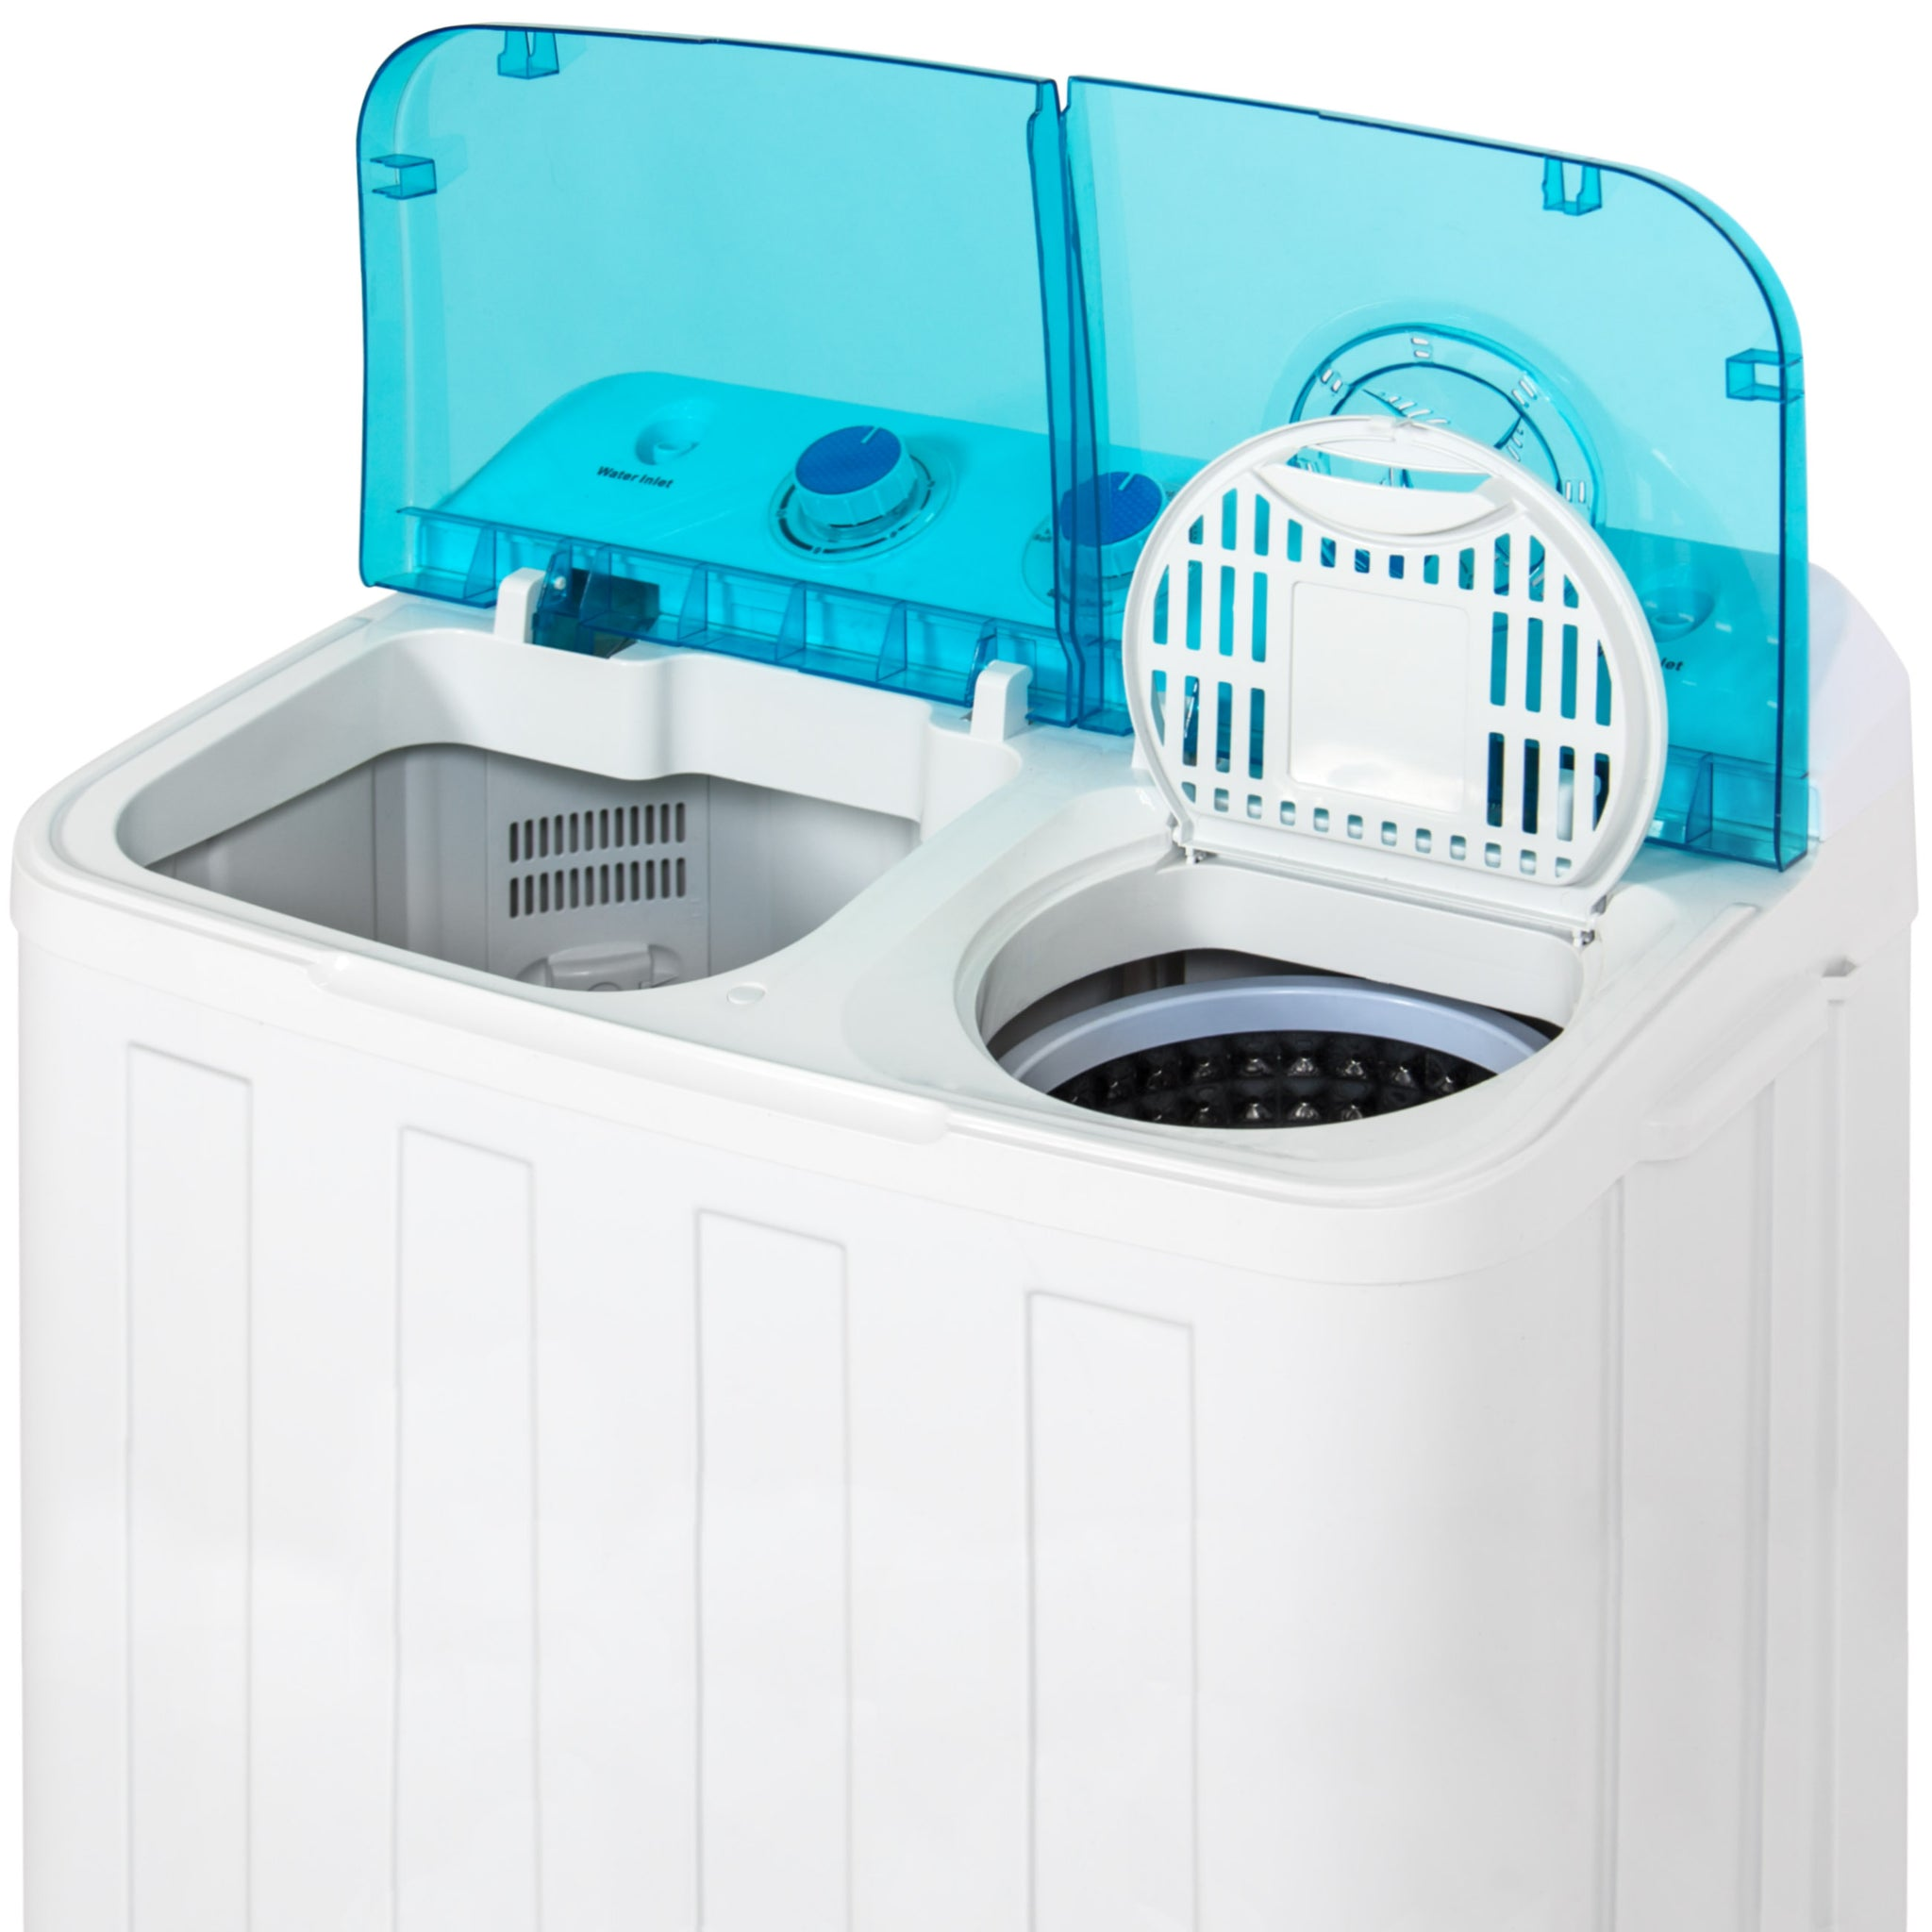 best choice products mini twin tub portable compact washing machine spin dry cycle 12lbs capacity